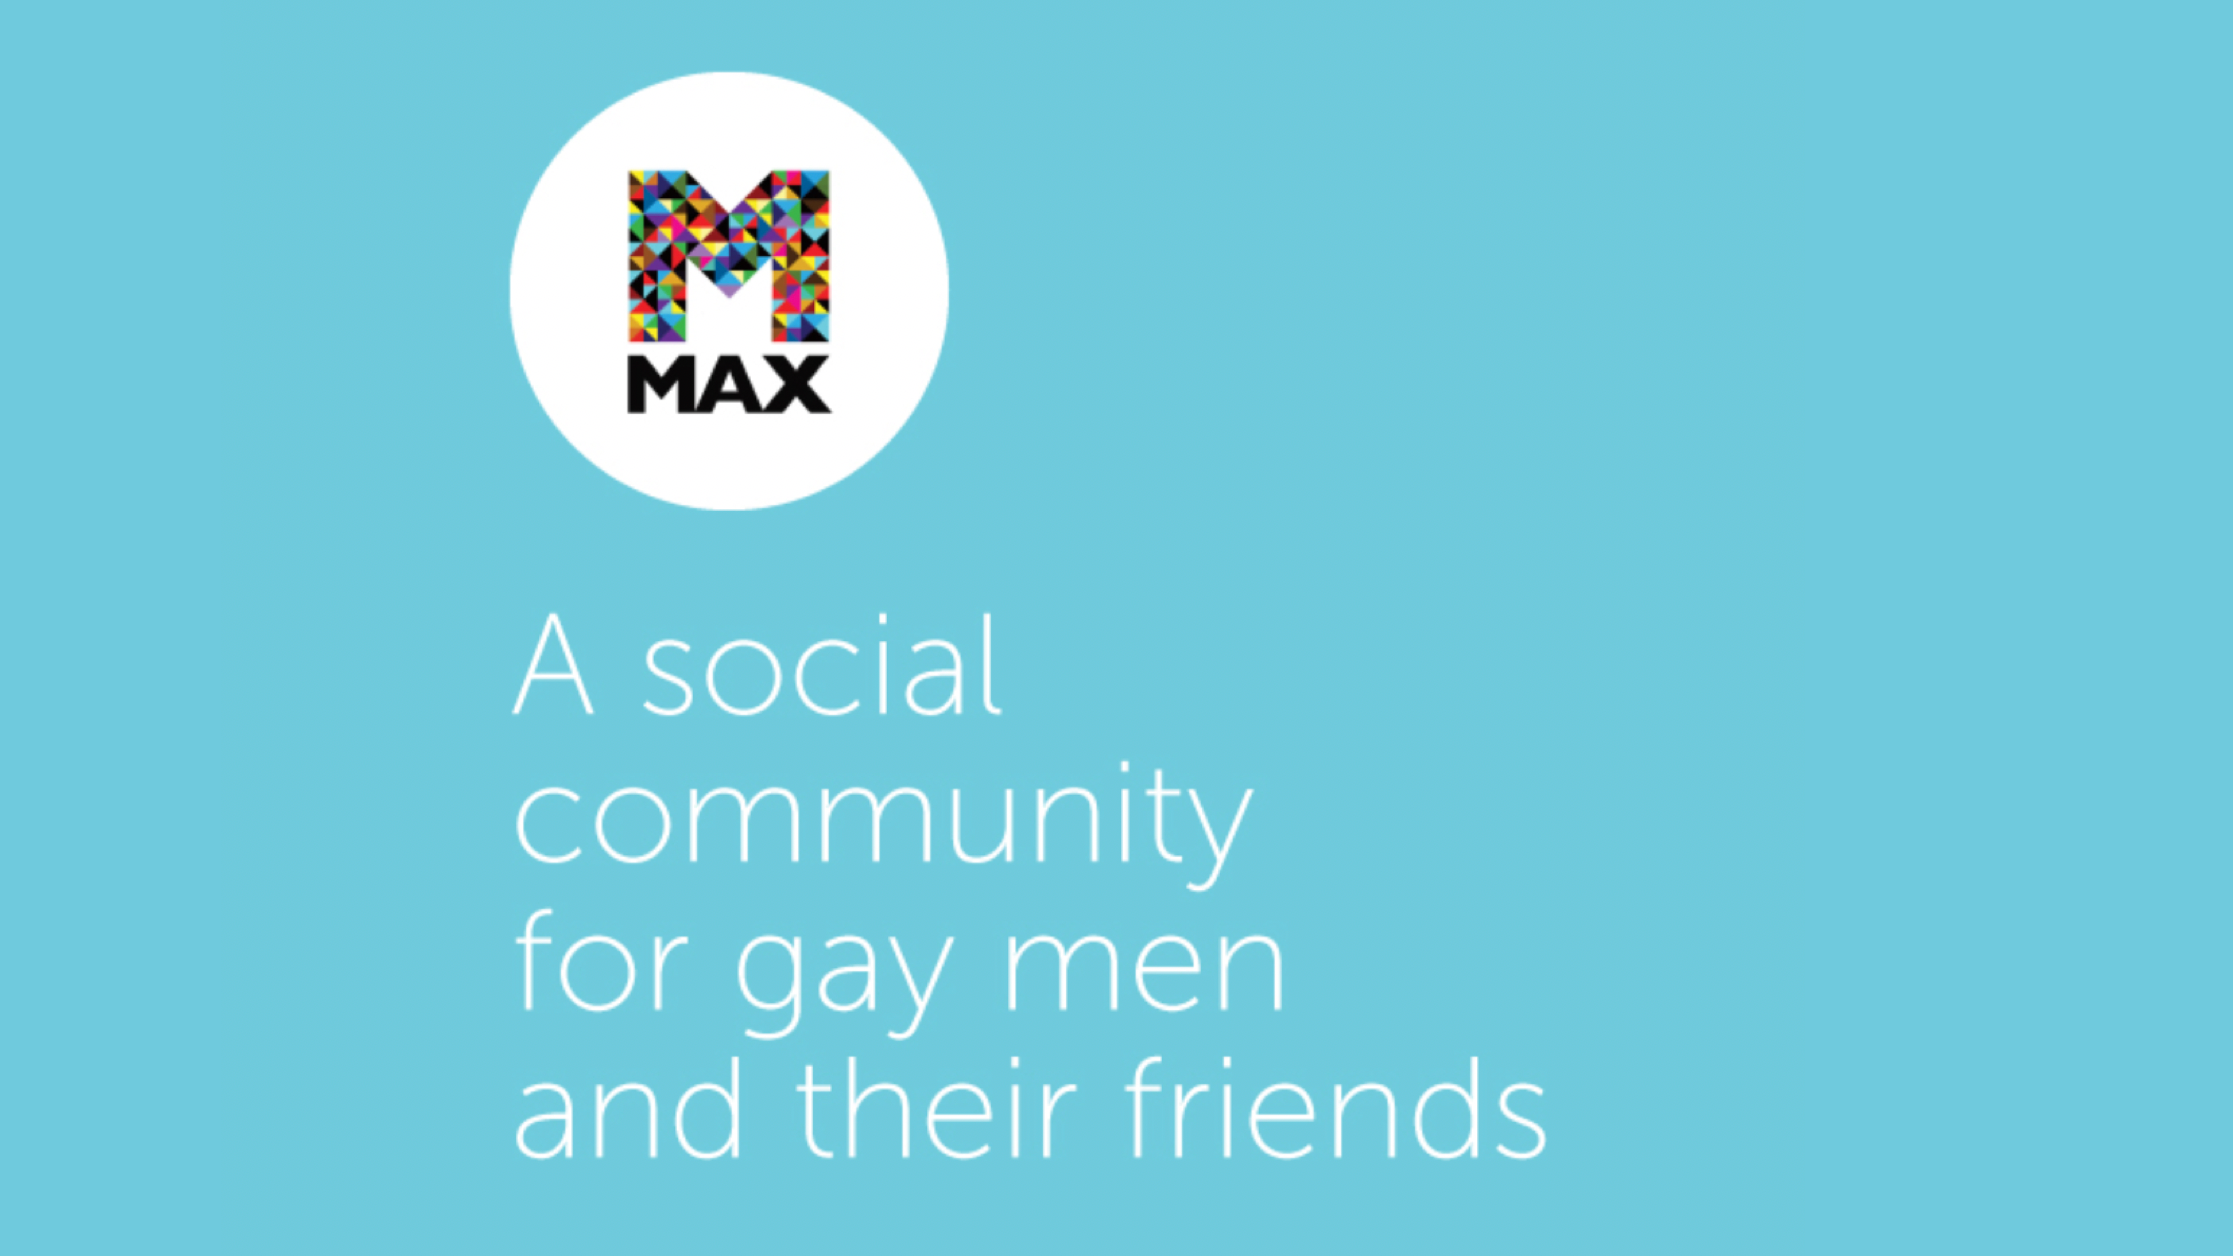 MAX SF | A social community for gay men and their friends.